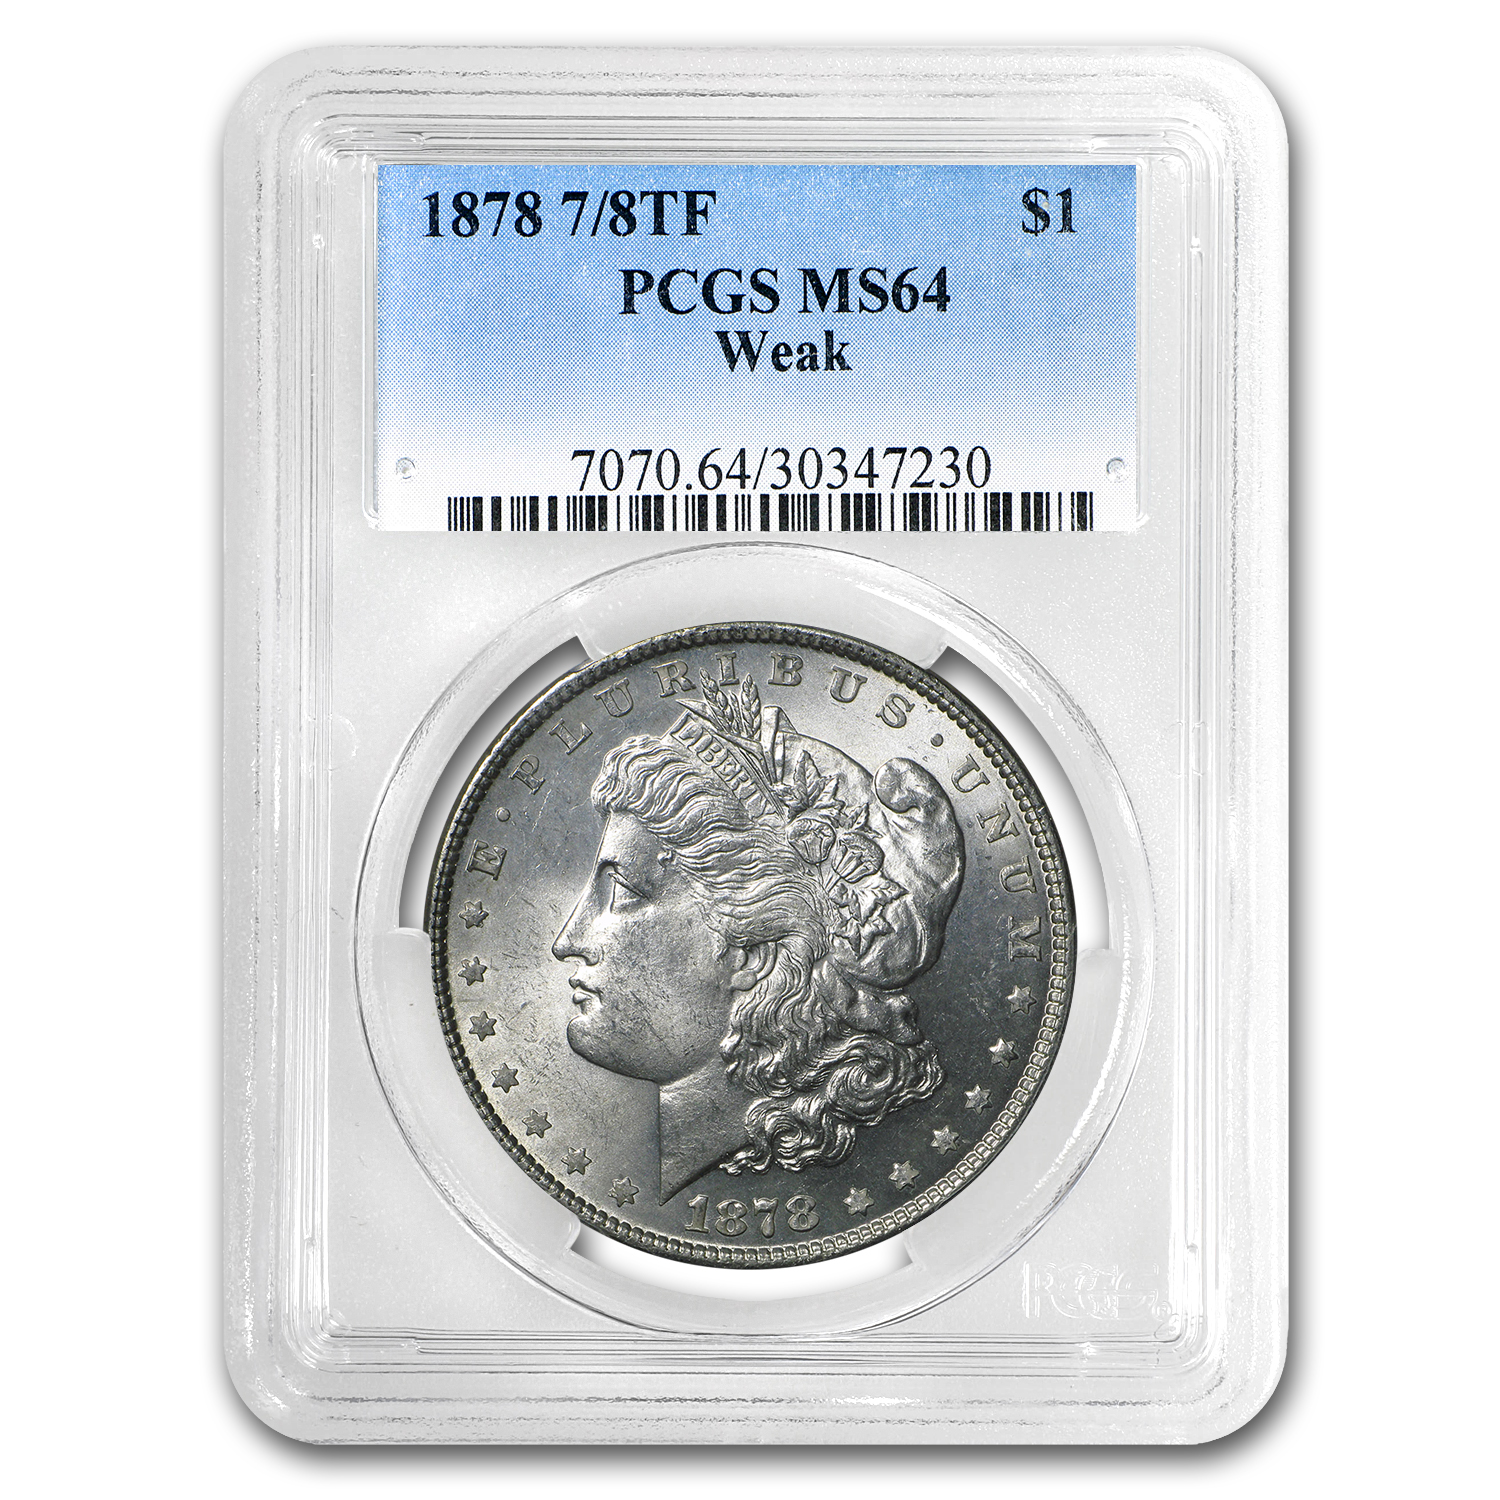 1878 Morgan Dollar 7/8 TF Weak MS-64 PCGS